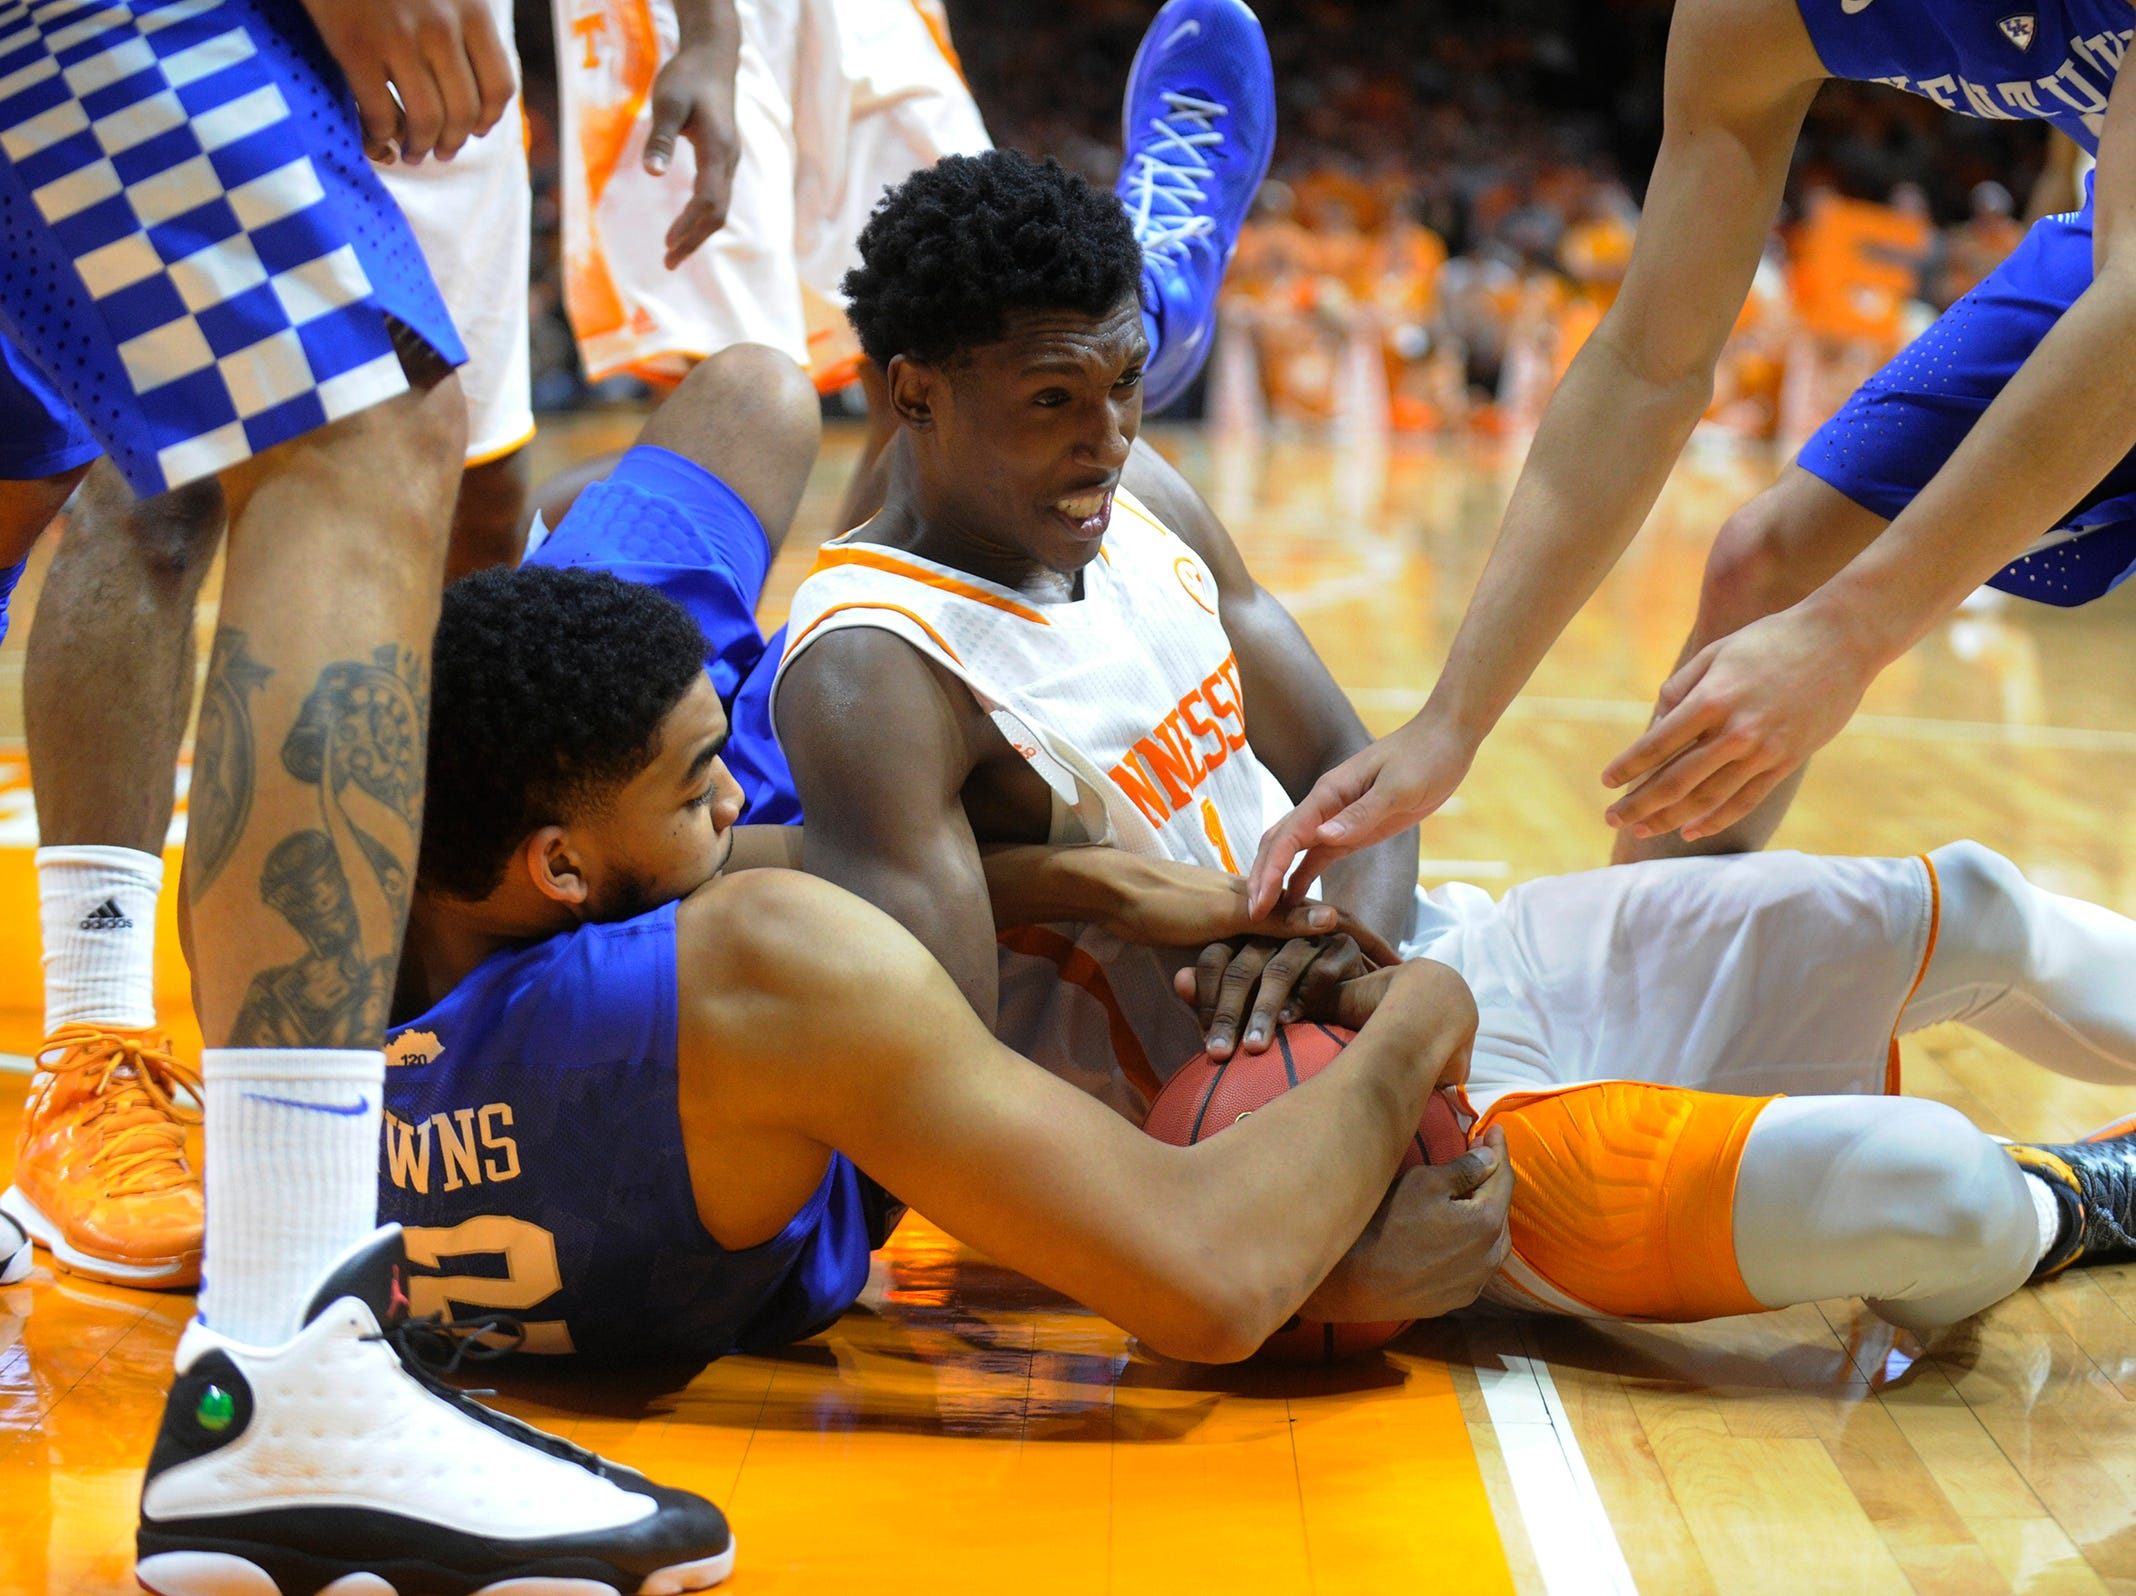 Tennessee guard Josh Richardson (1) fights for the ball against Kentucky forward Karl-Anthony Towns (12) during the second half at Thompson-Boling Arena in Knoxville on Tuesday, Feb. 17, 2015. Kentucky defeated Tennessee 66-48.